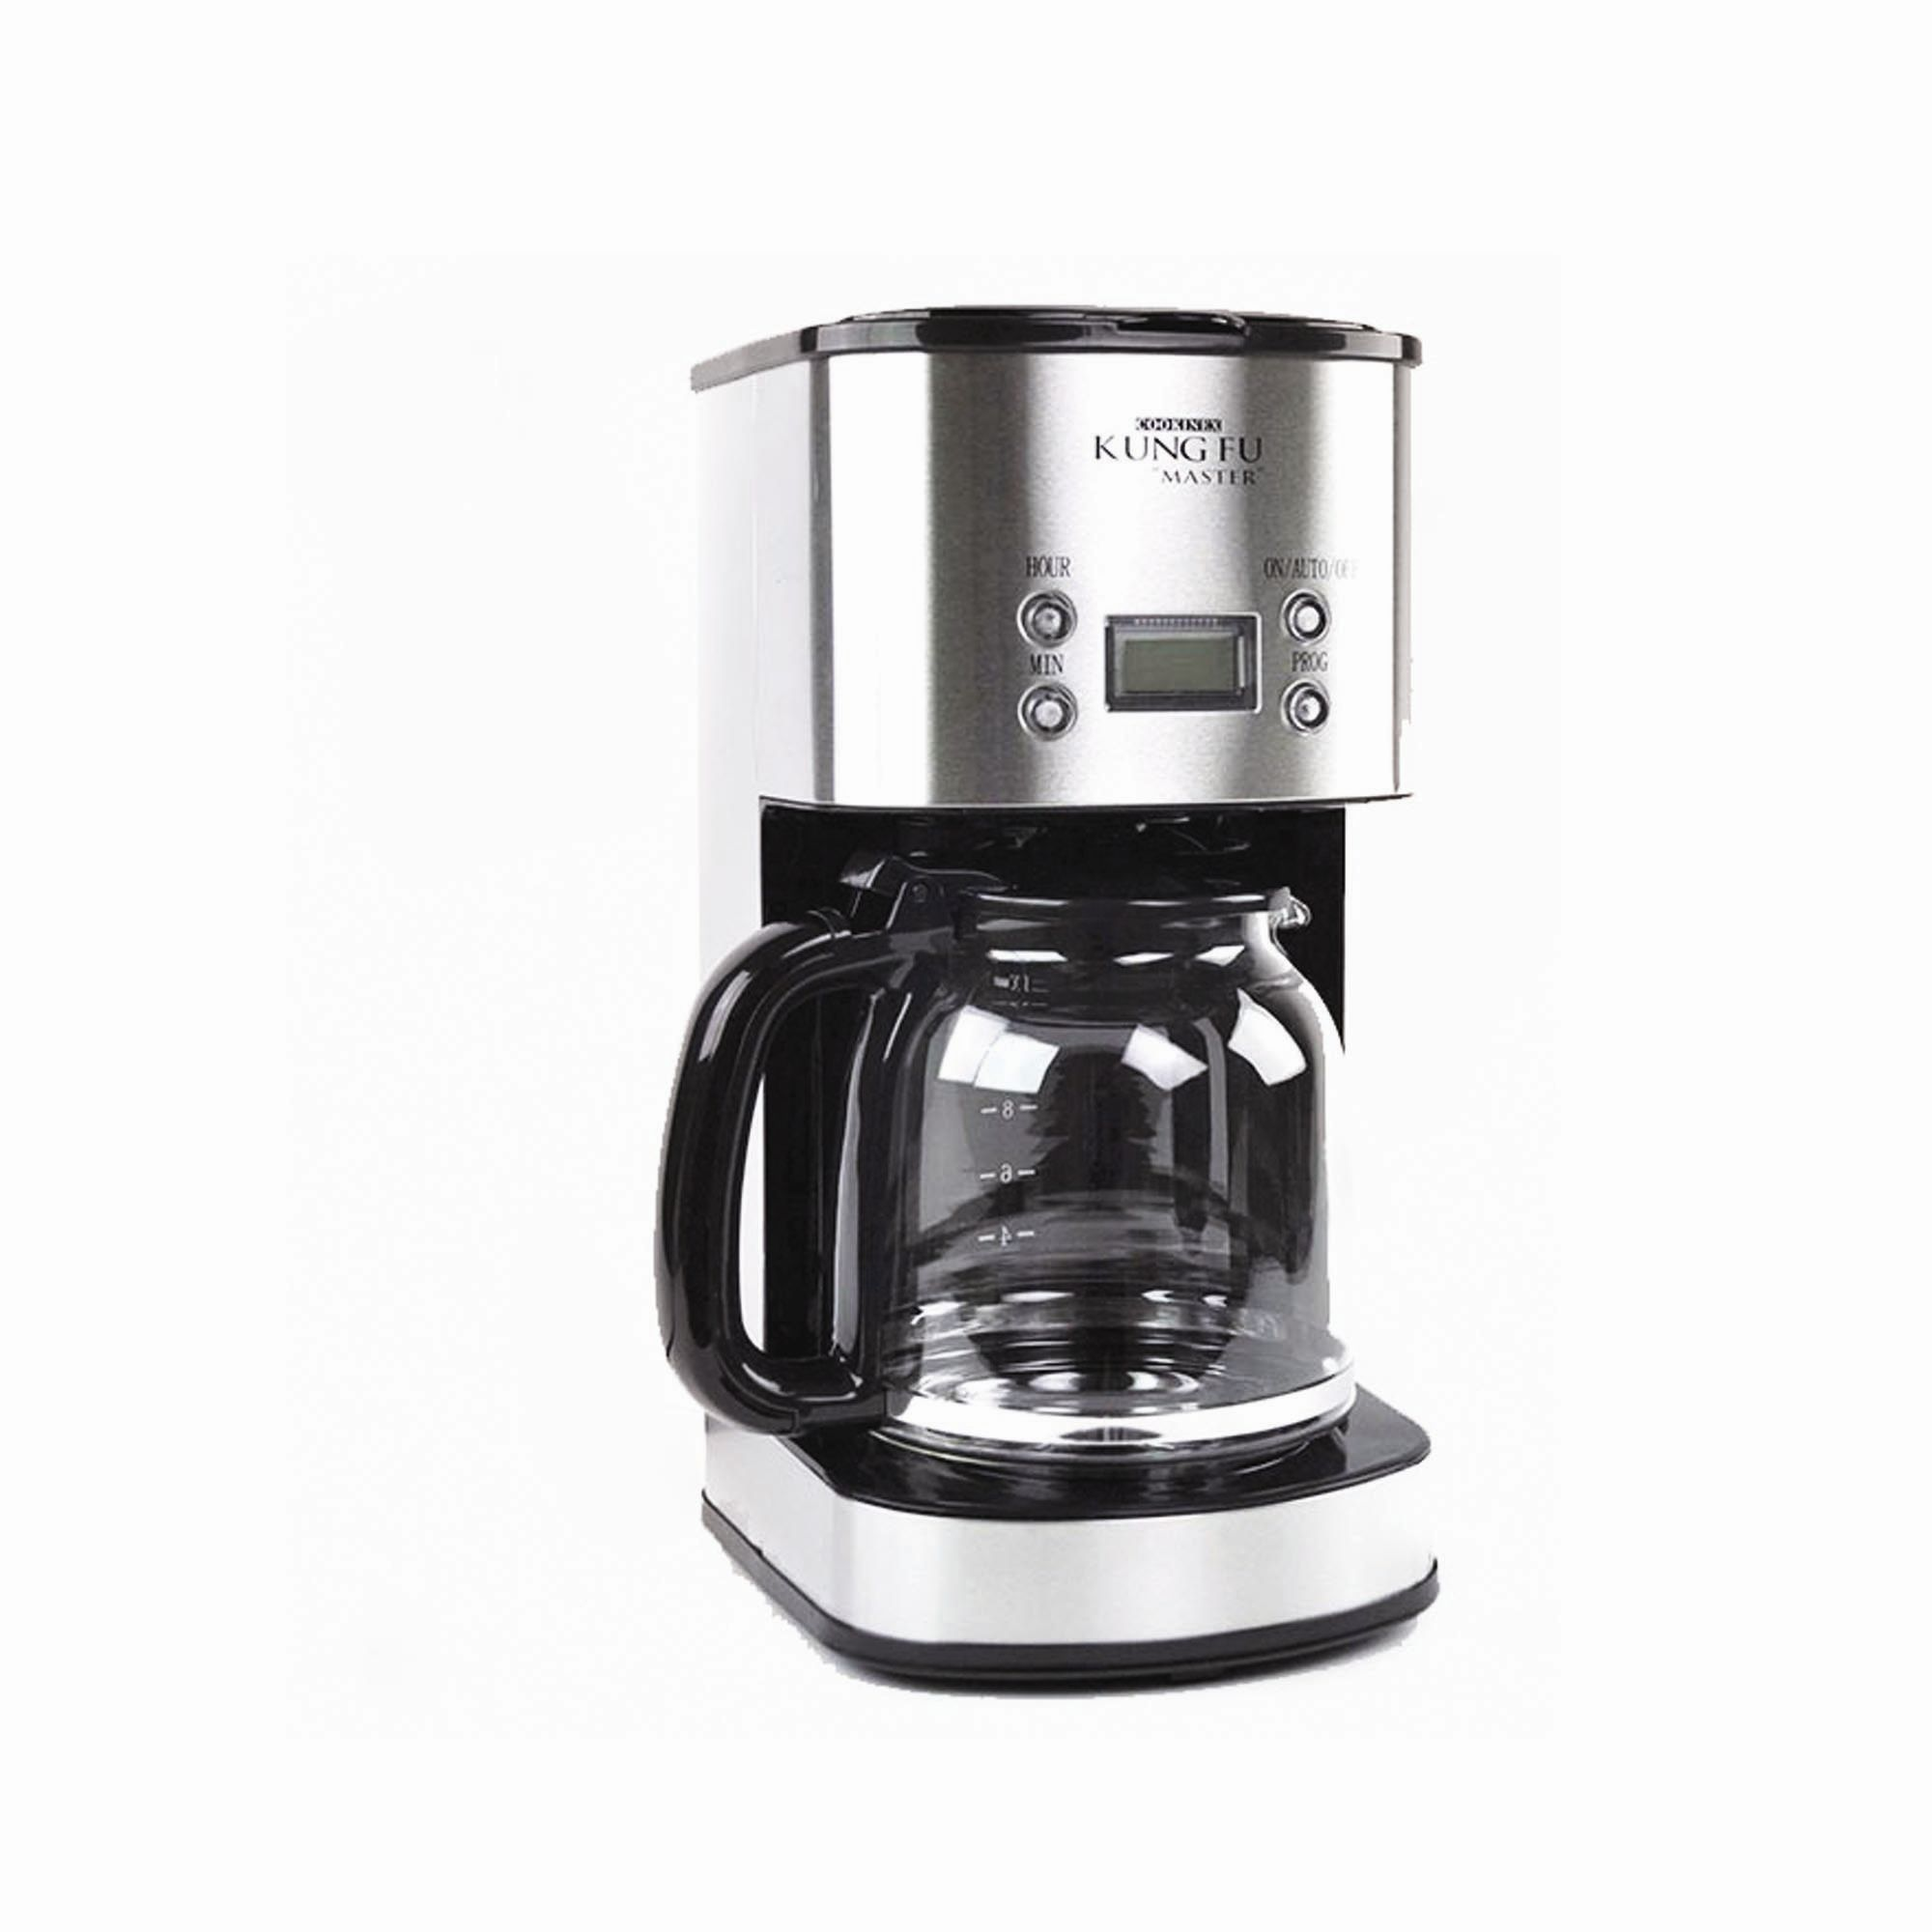 Kung Fu Master KF2000 12 Cup Stainless Steel Coffee Maker...